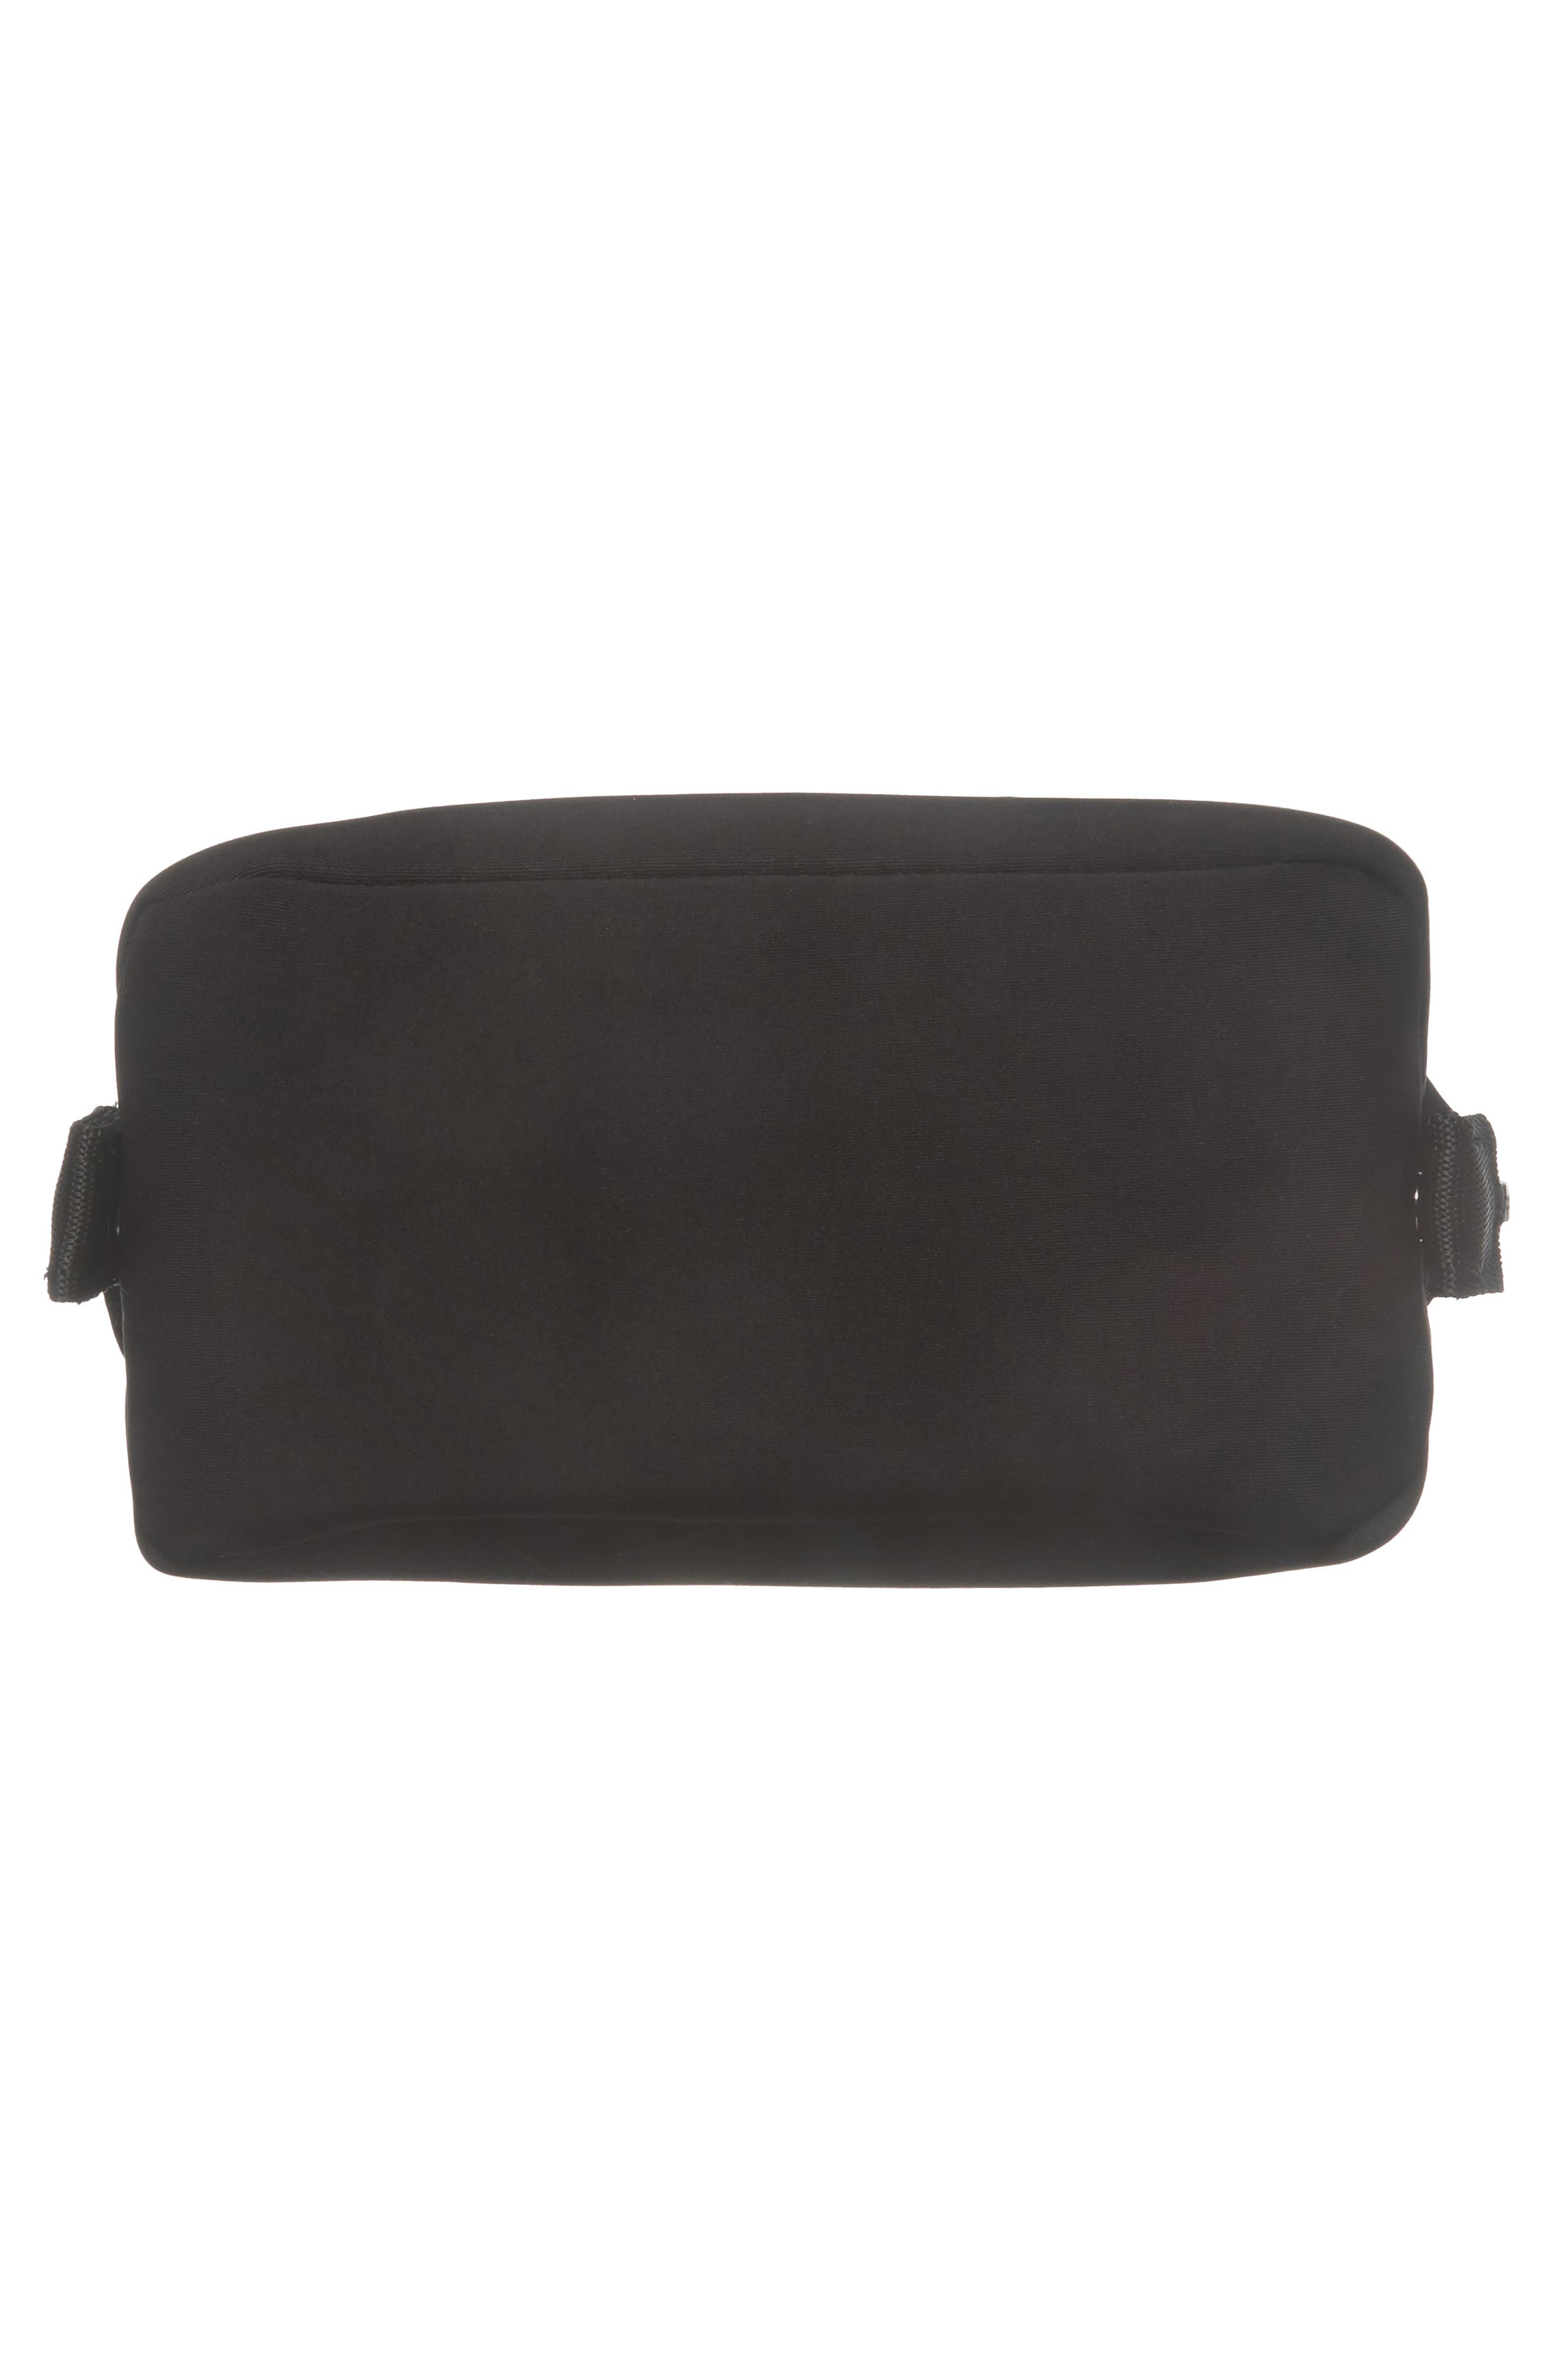 Small Hunter Neoprene Toiletry Bag,                             Alternate thumbnail 5, color,                             001